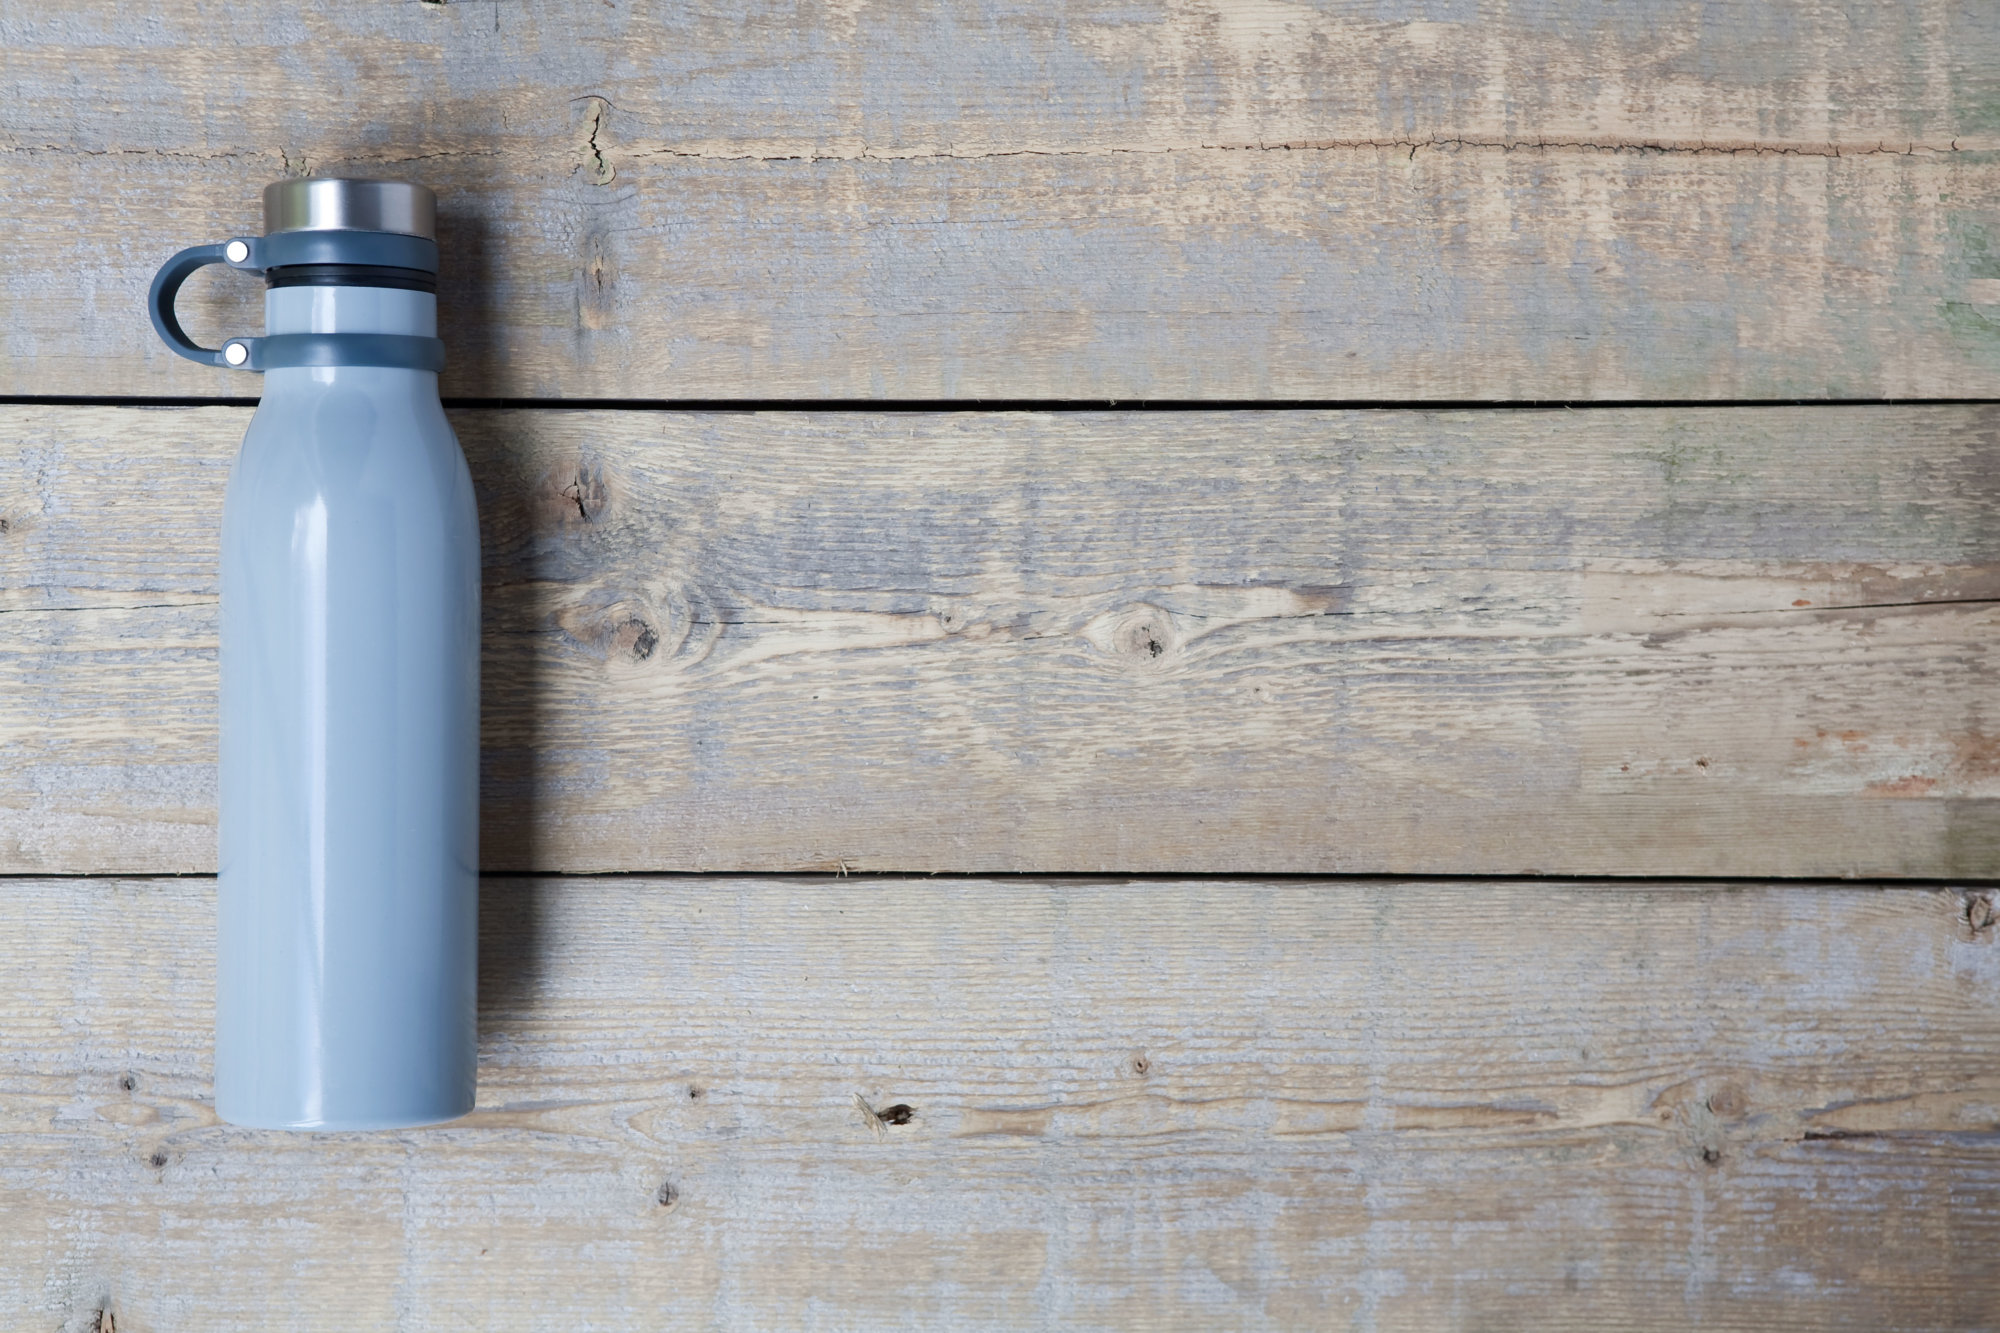 Blue stainless steel, reusable drink container flat lay on a light brown wooden table, with copy space. Horizontal.